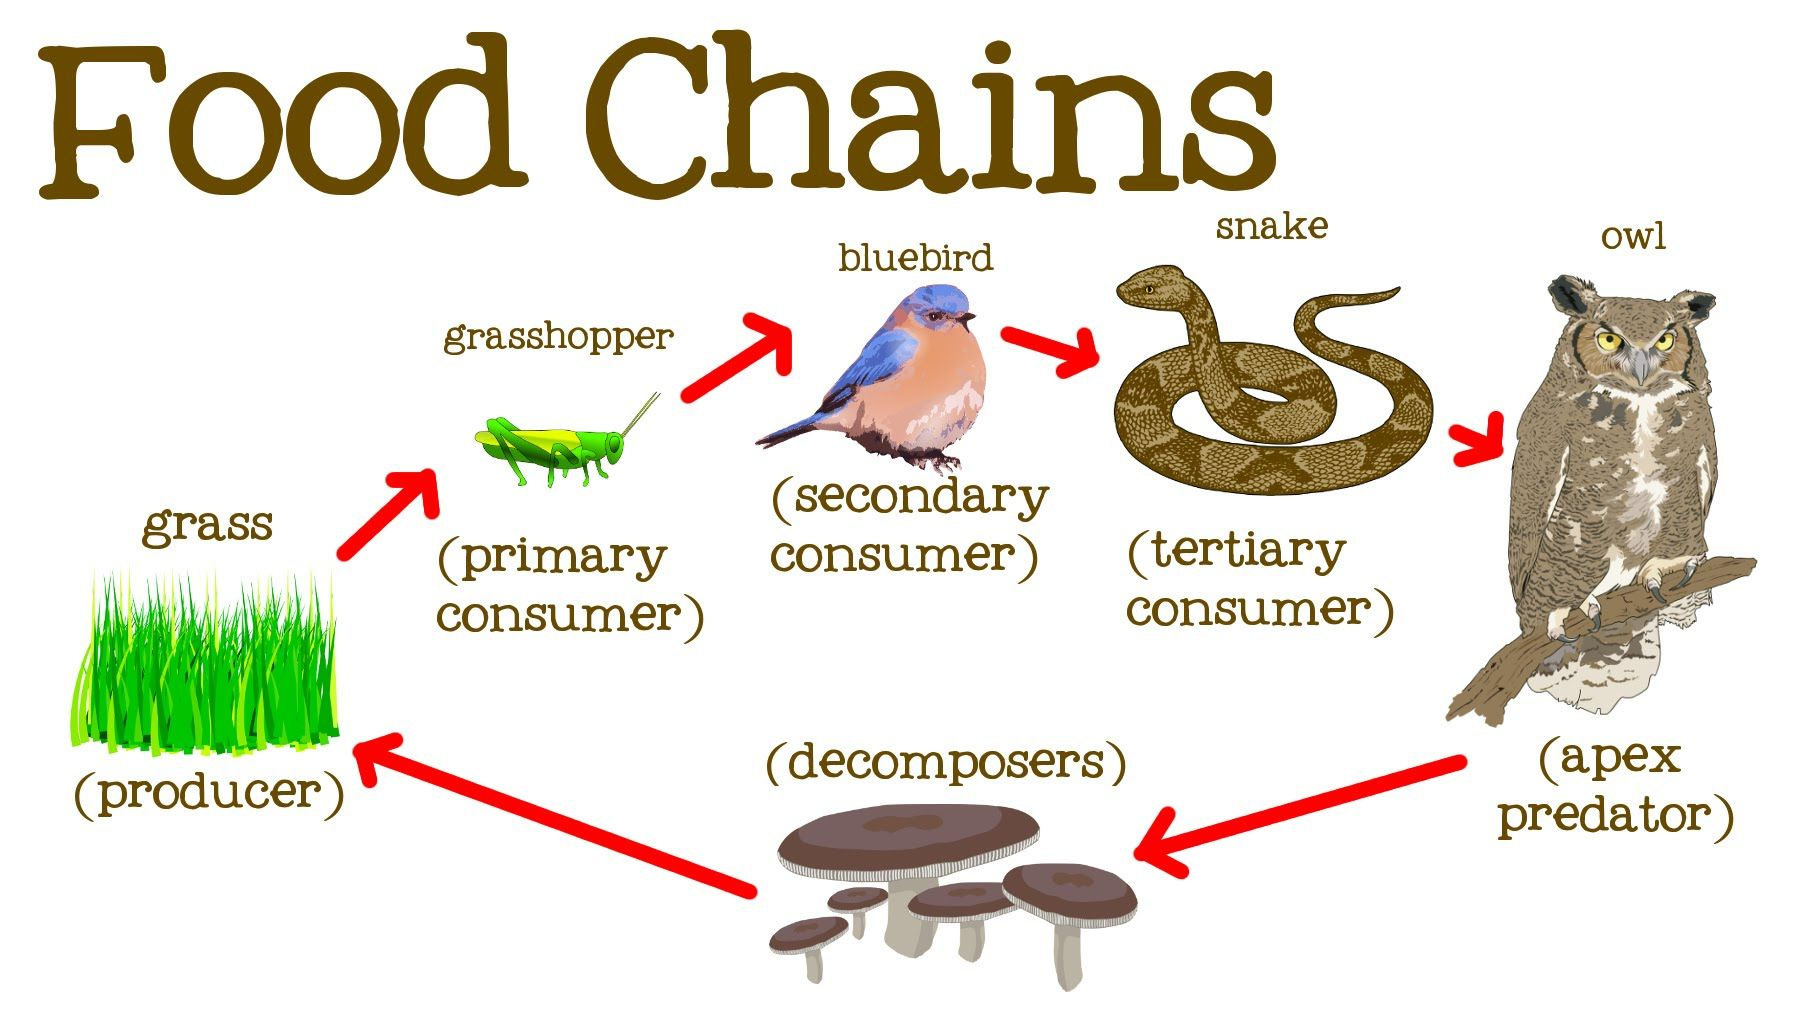 Food Chains For Kids Food Webs The Circle Of Life And The Flow Of Energy Freeschool Youtube Food Chain Food Chains Anchor Chart Food Chain Diagram